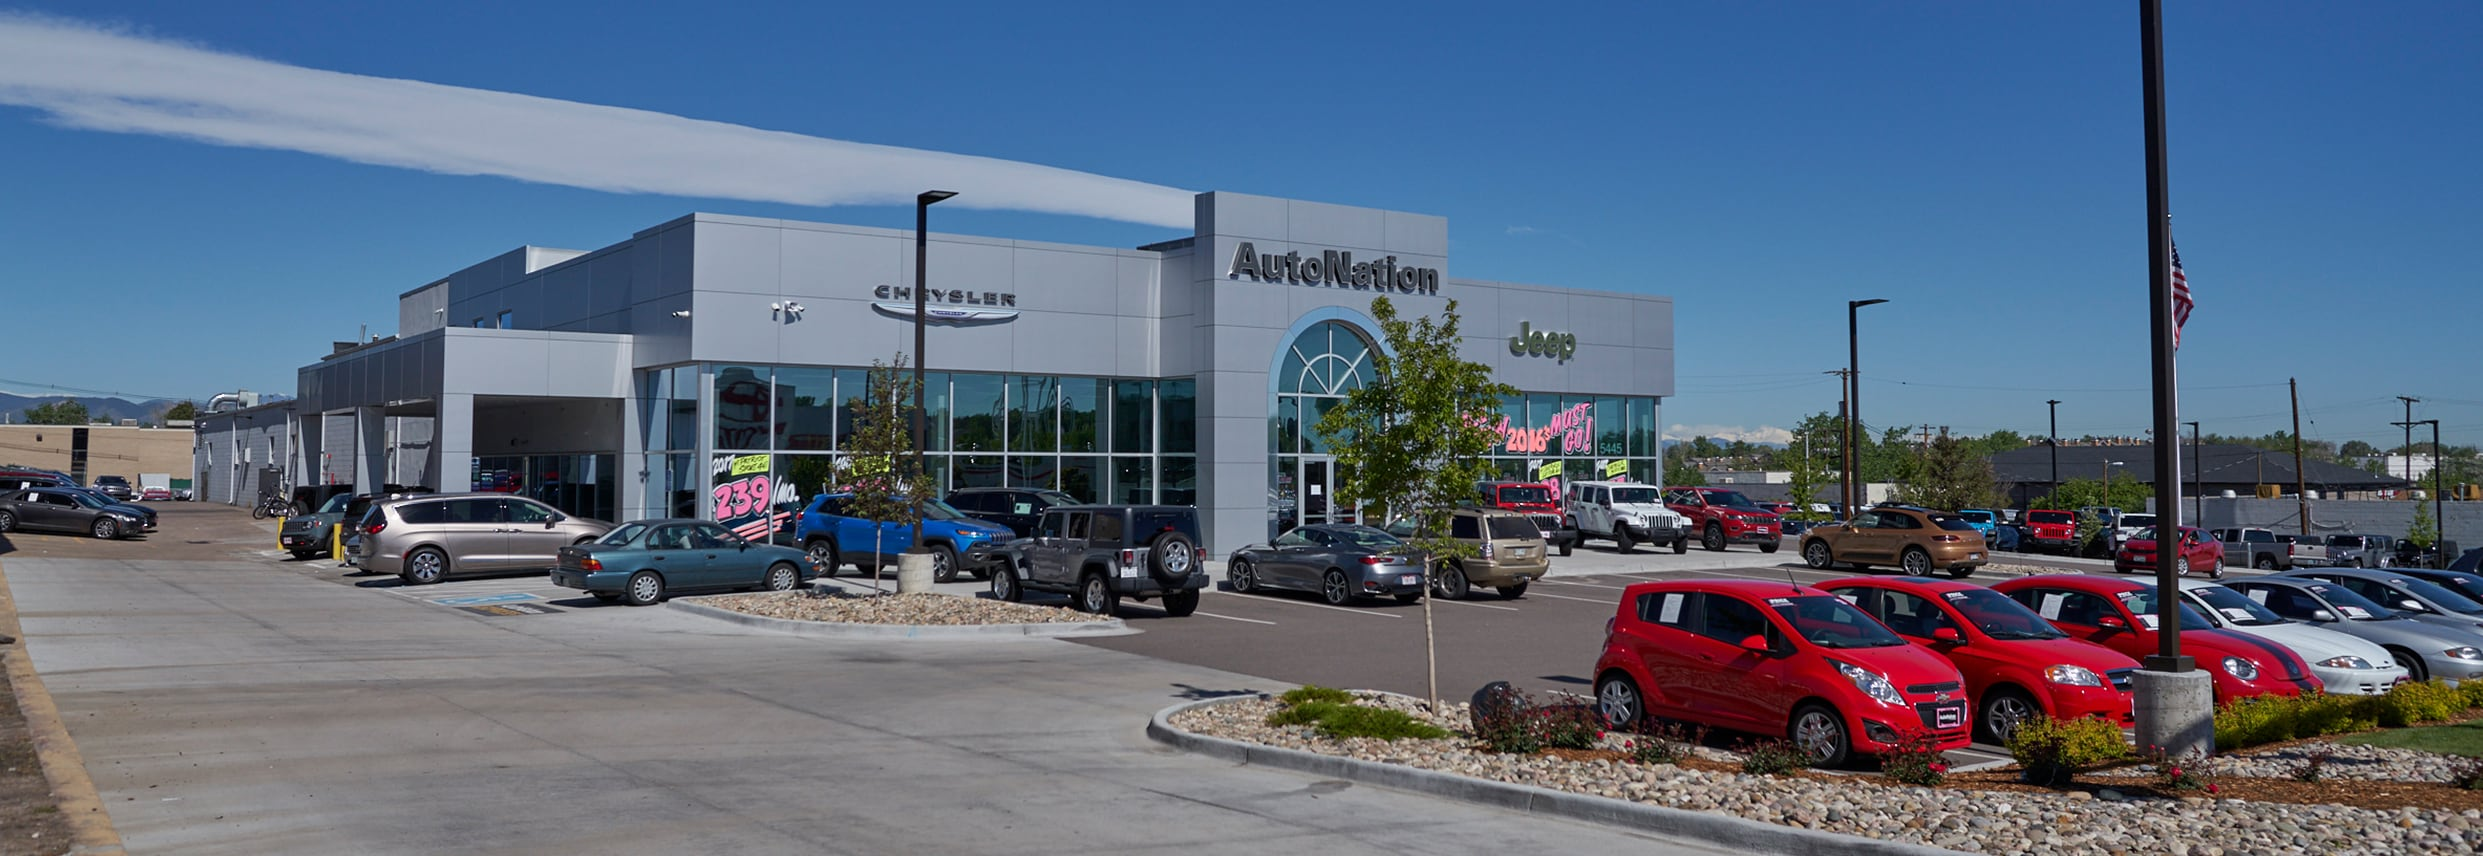 Outside view of Autonation Chrysler Jeep Broadway